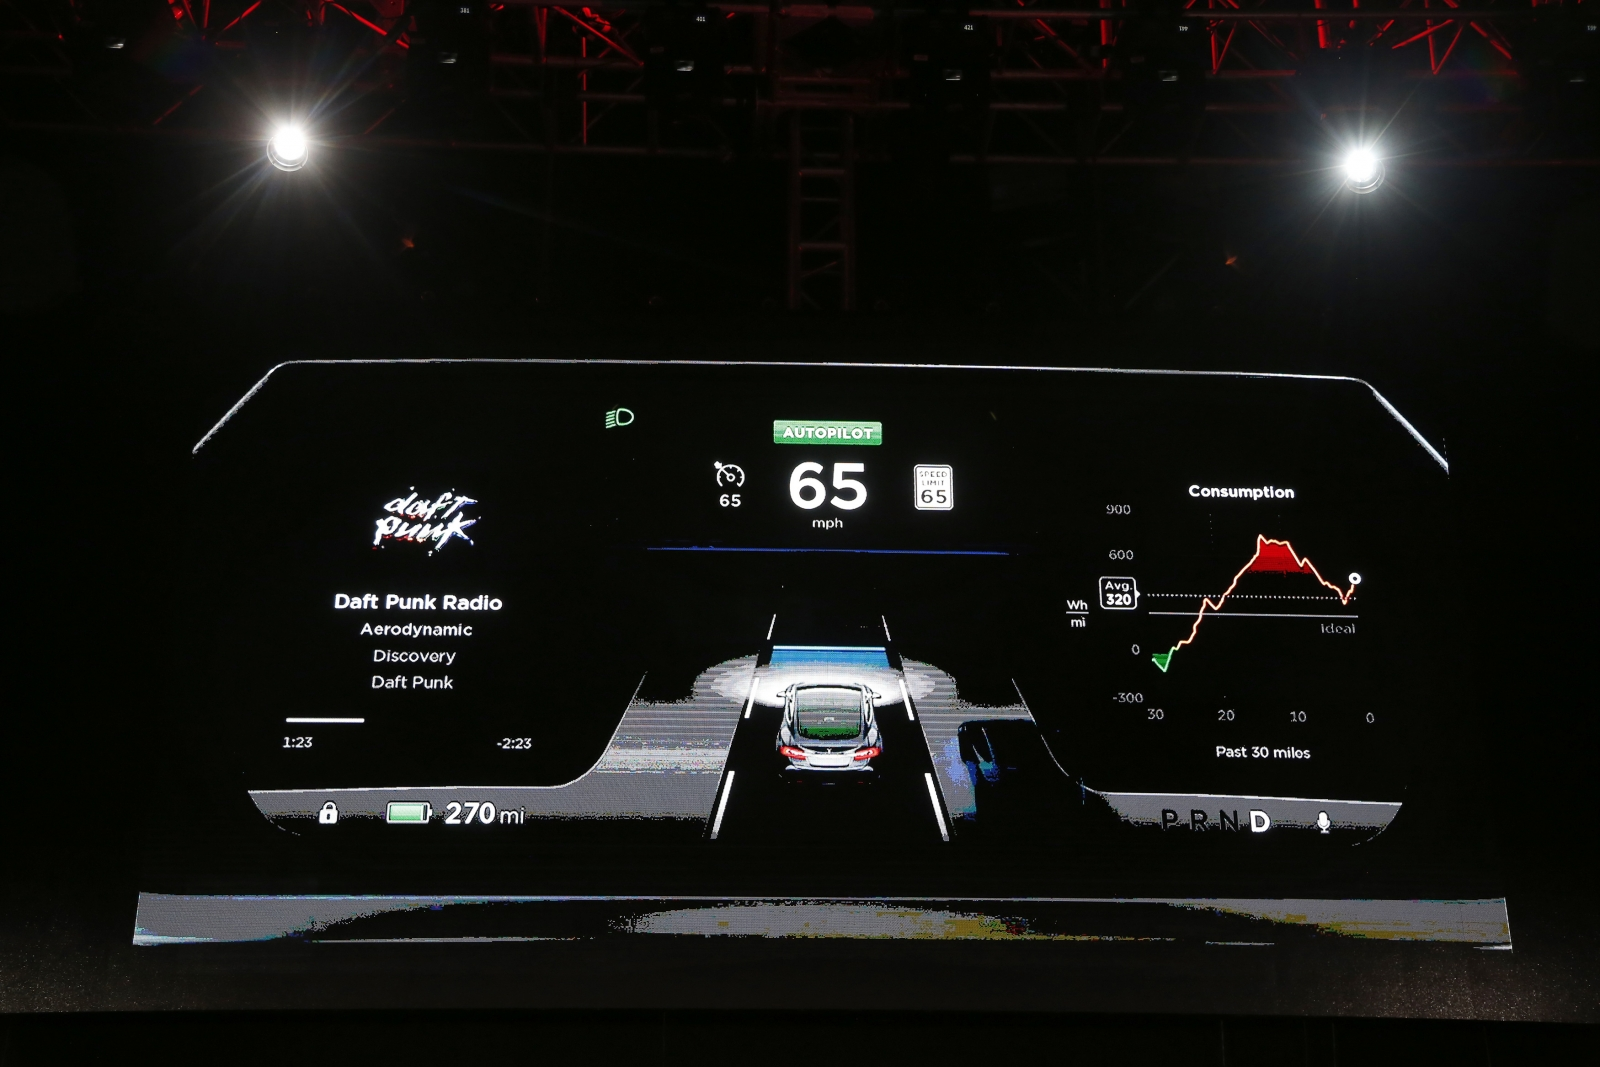 Dashboard Tesla Model S Car Features That Will Allow Its Electric Sedan Park Itself Sense on Car Dashboard Full